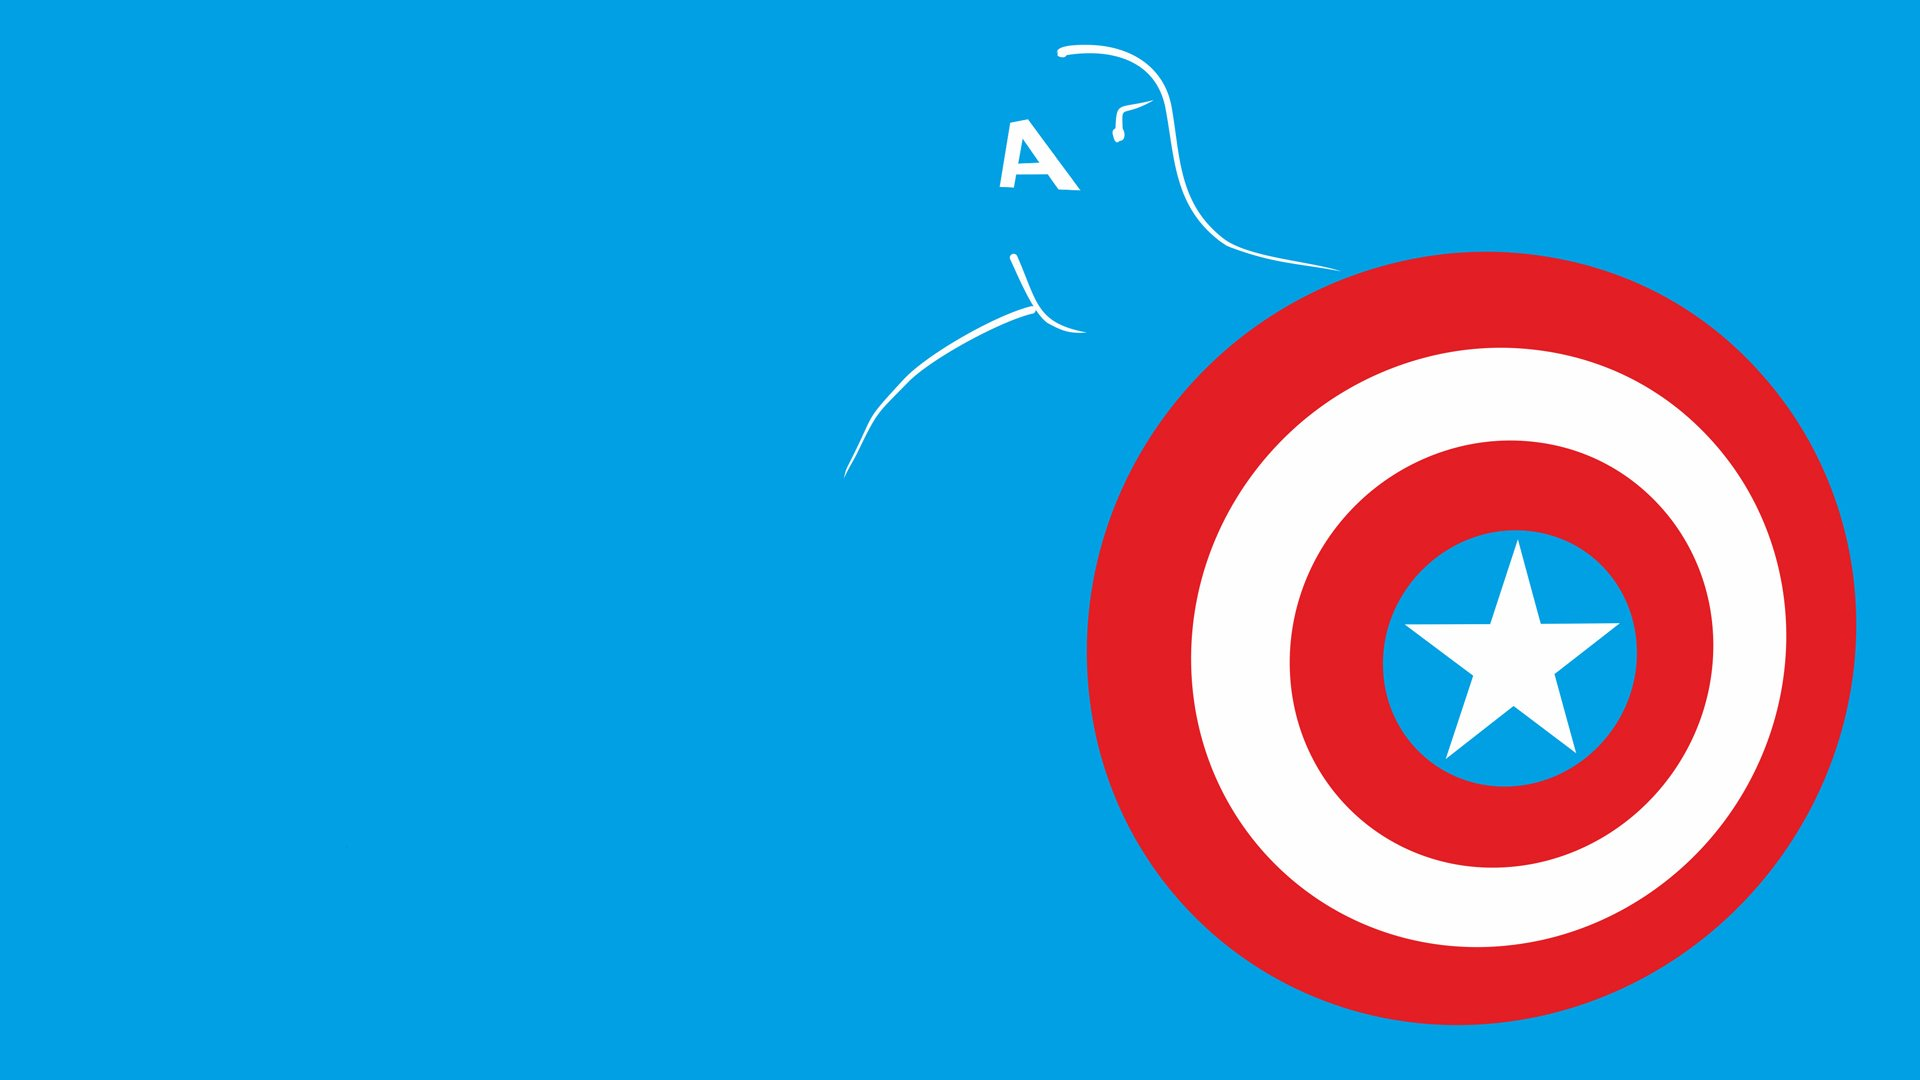 Captain America Shield Blue Minimal Marvel wallpaper 1920x1080 1920x1080